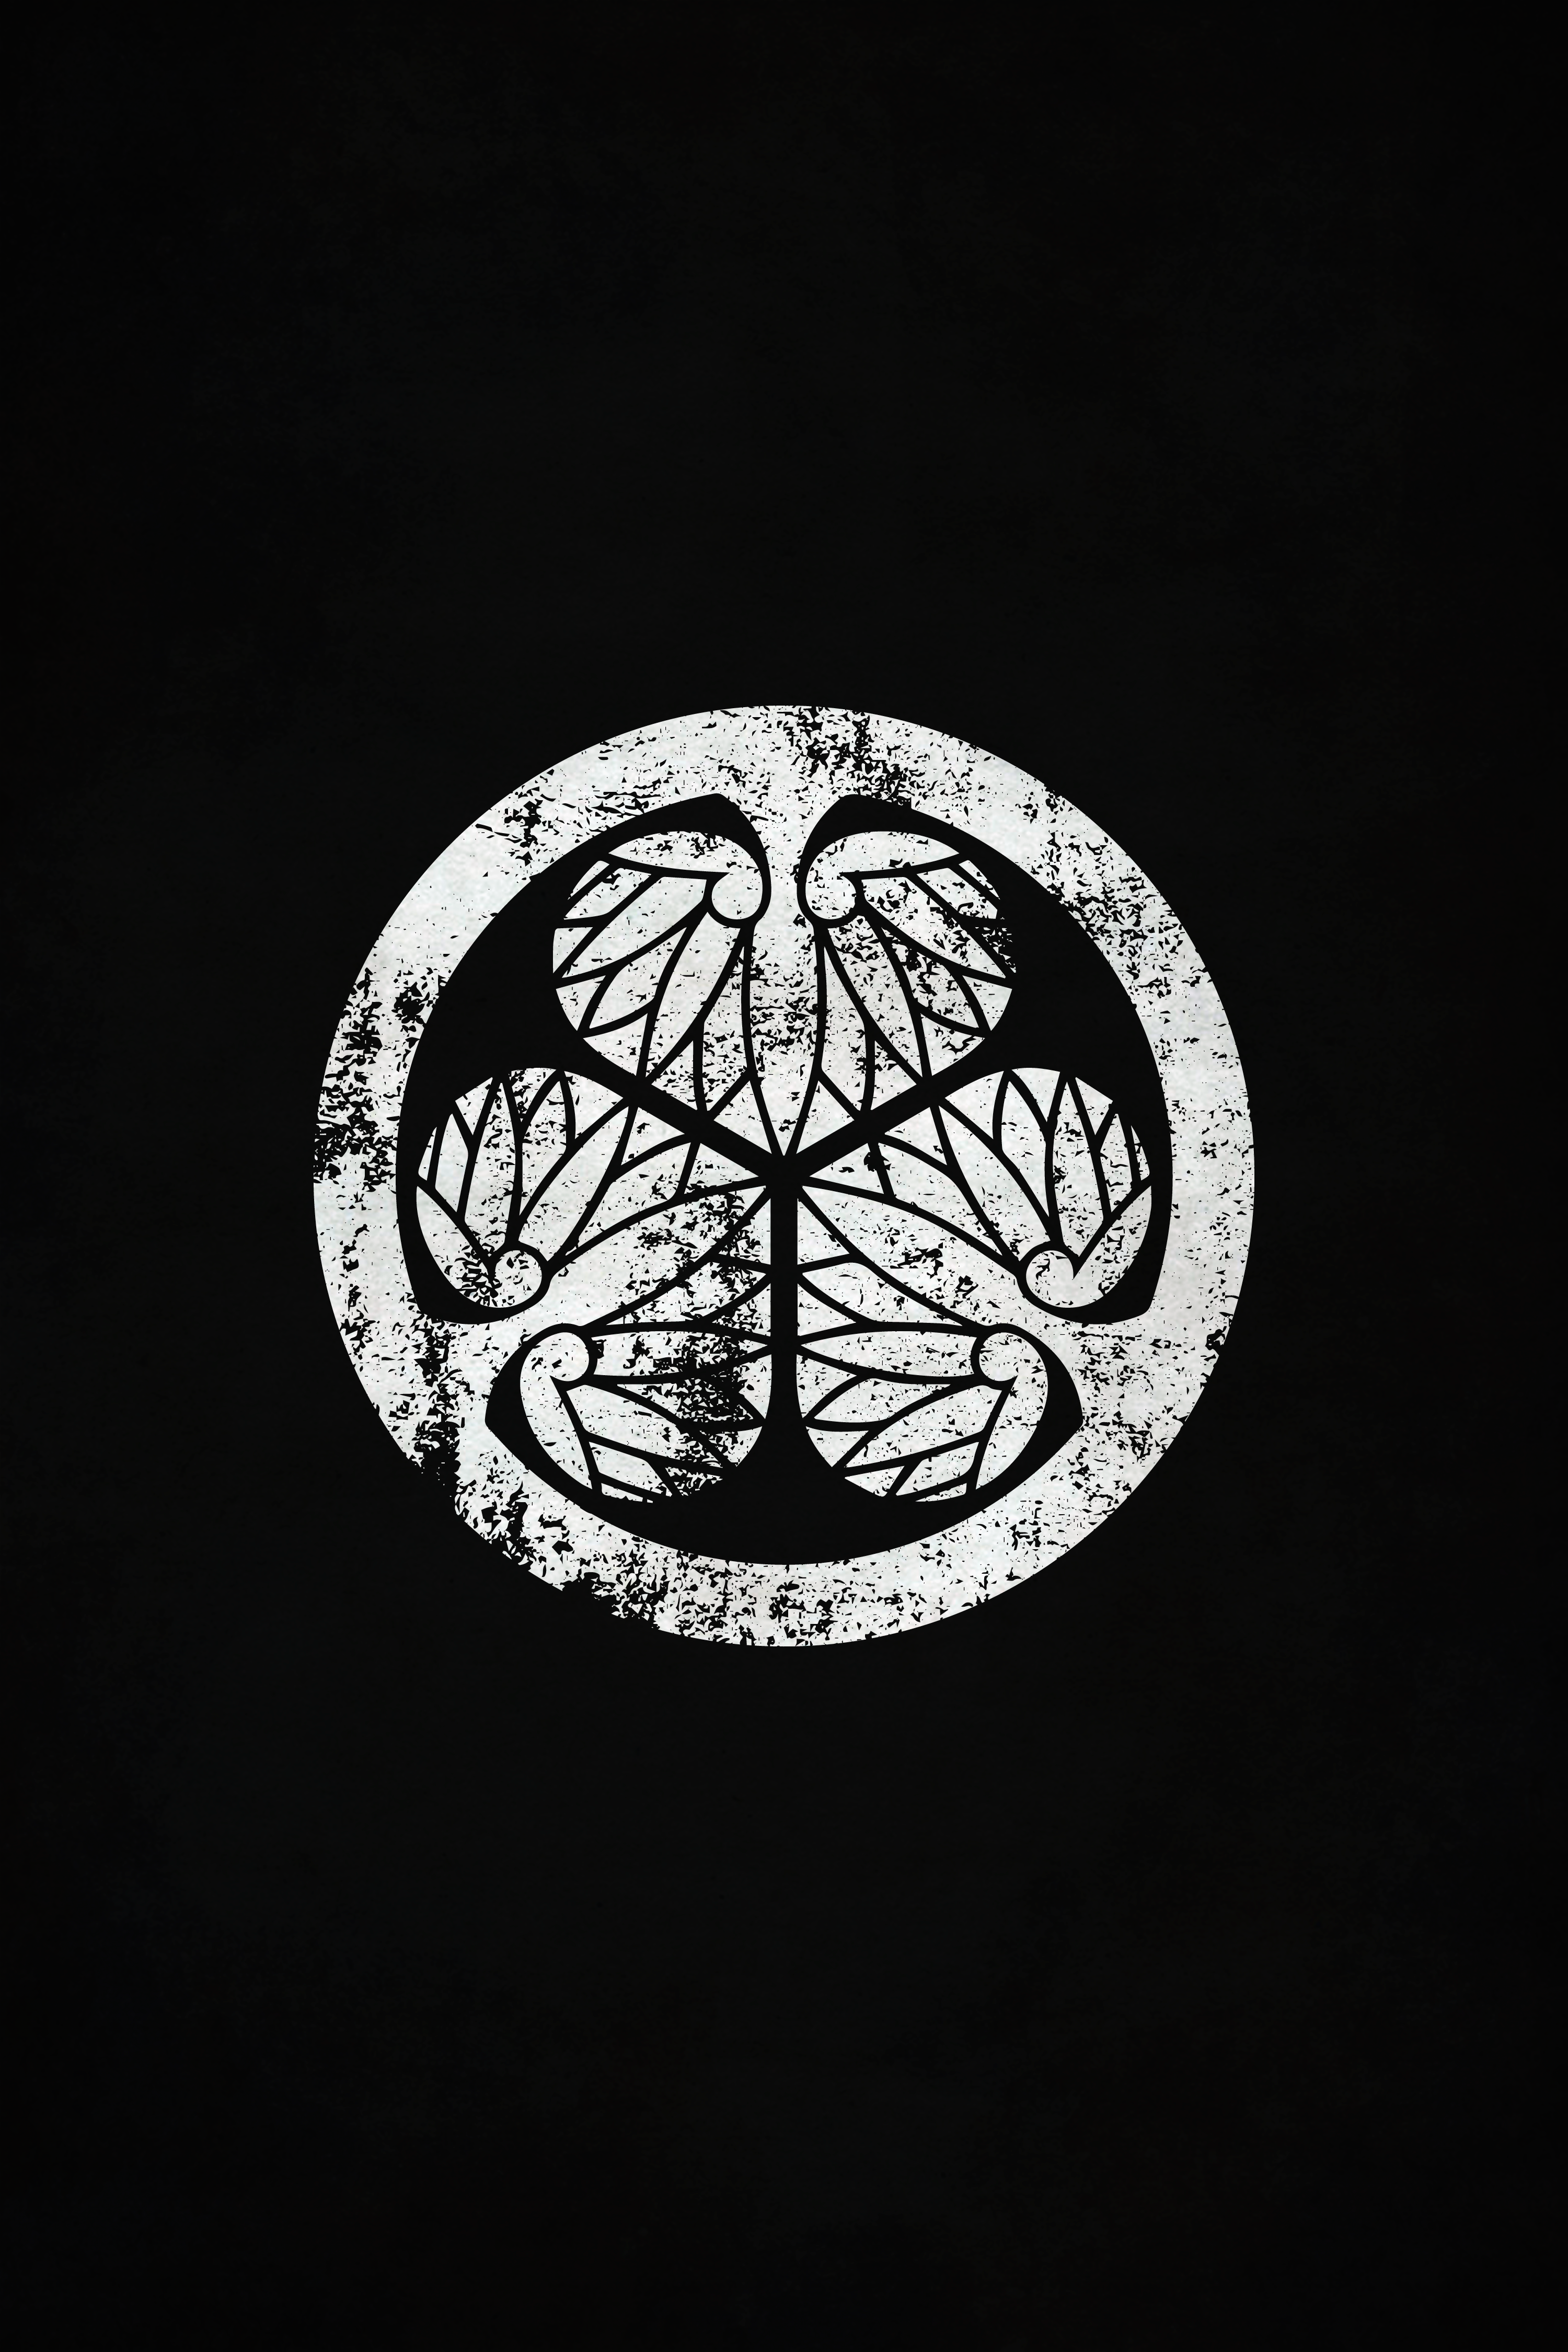 What Is Kamon The Clan Symbols Kamon Used To Be Very Important In Japan Each Clan Had A Fam In 2021 Japanese Family Crest Japanese Crest Japanese Family Crest Kamon